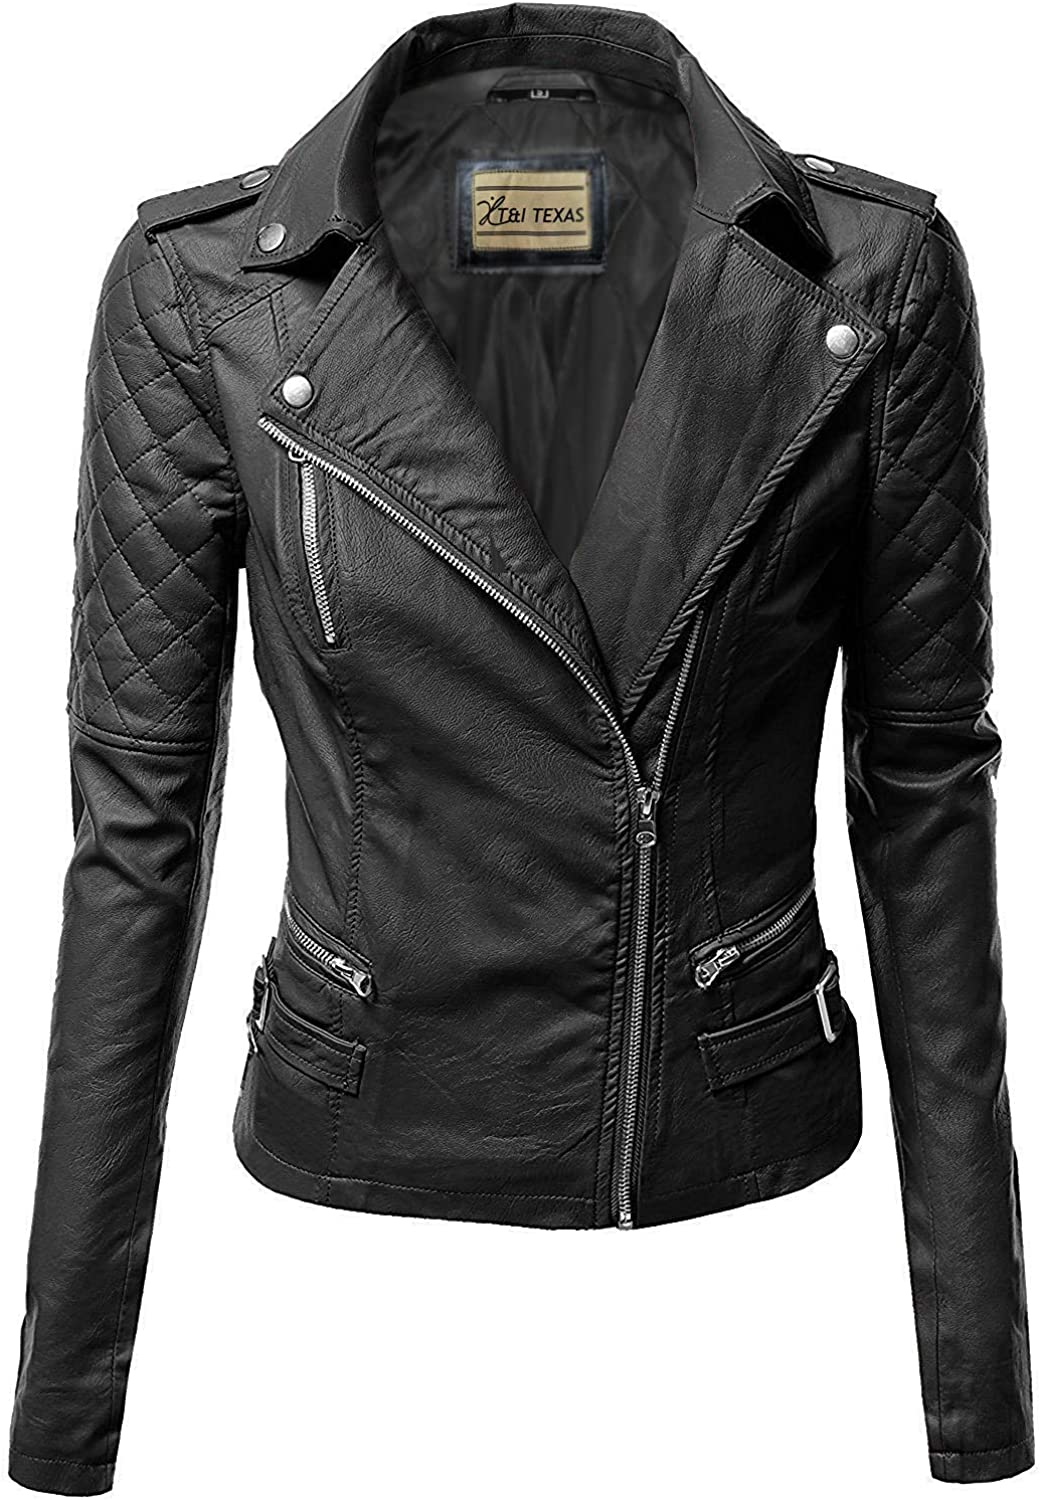 T&I Texas Notch Collar Quilted Biker Leather Jacket for Women